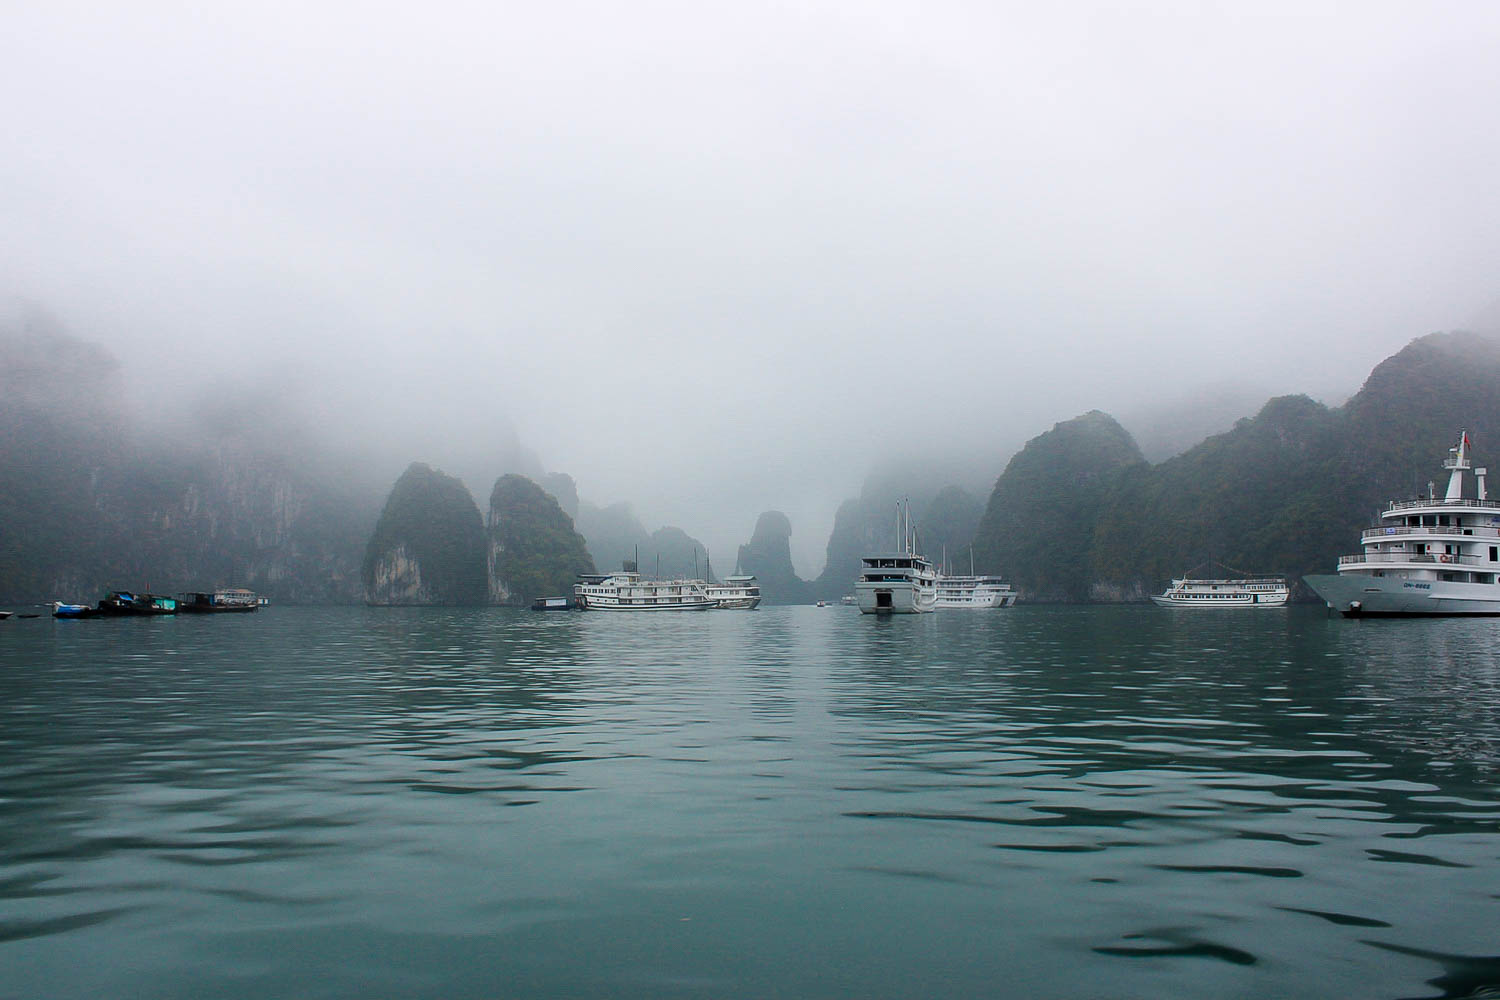 halong bay misty and foggy